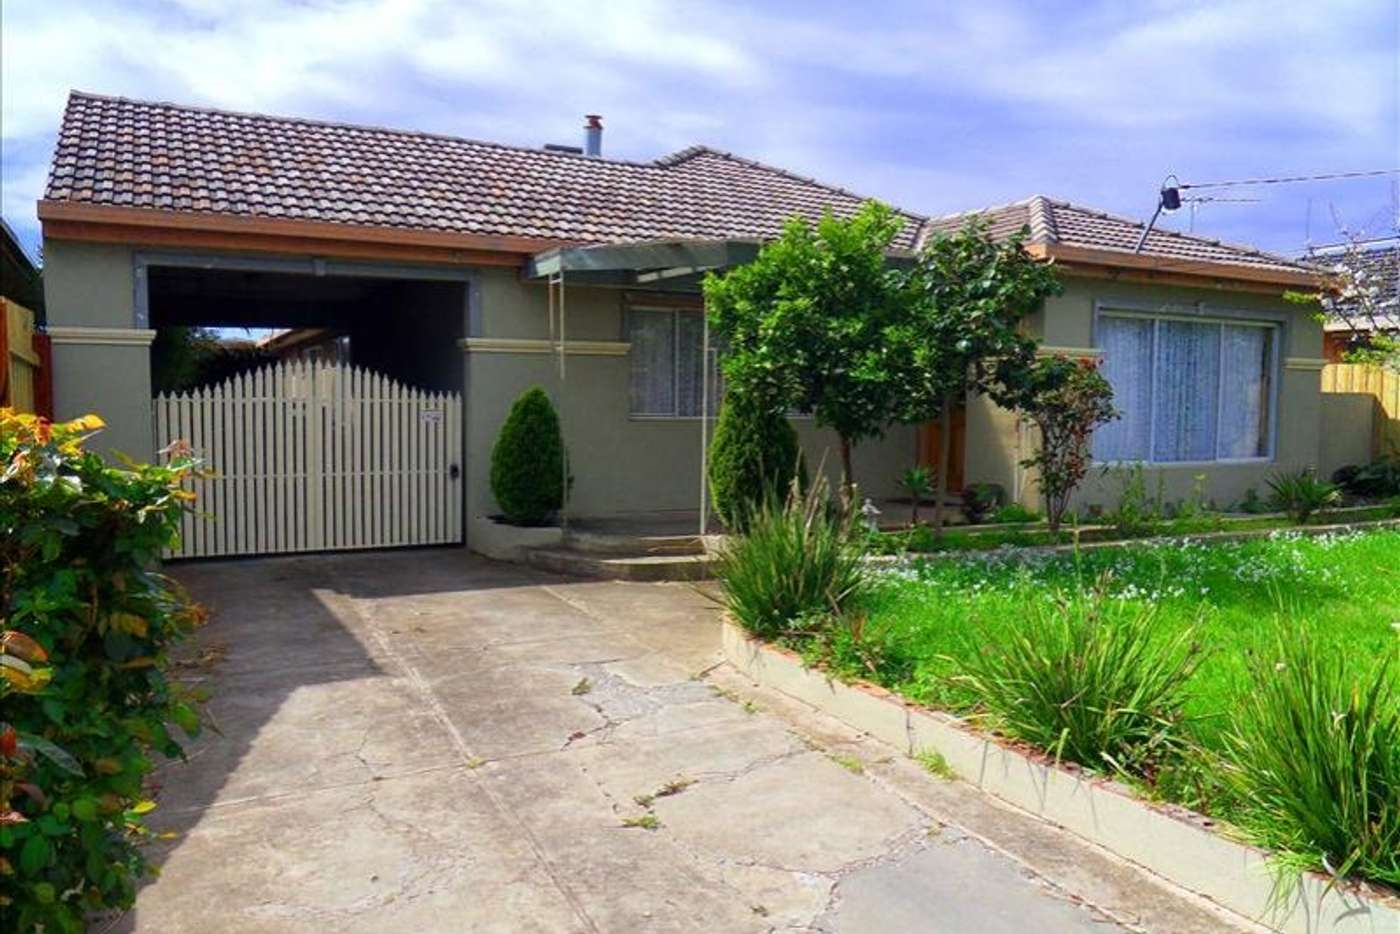 Main view of Homely house listing, 14 Wattle Street, Thomastown VIC 3074